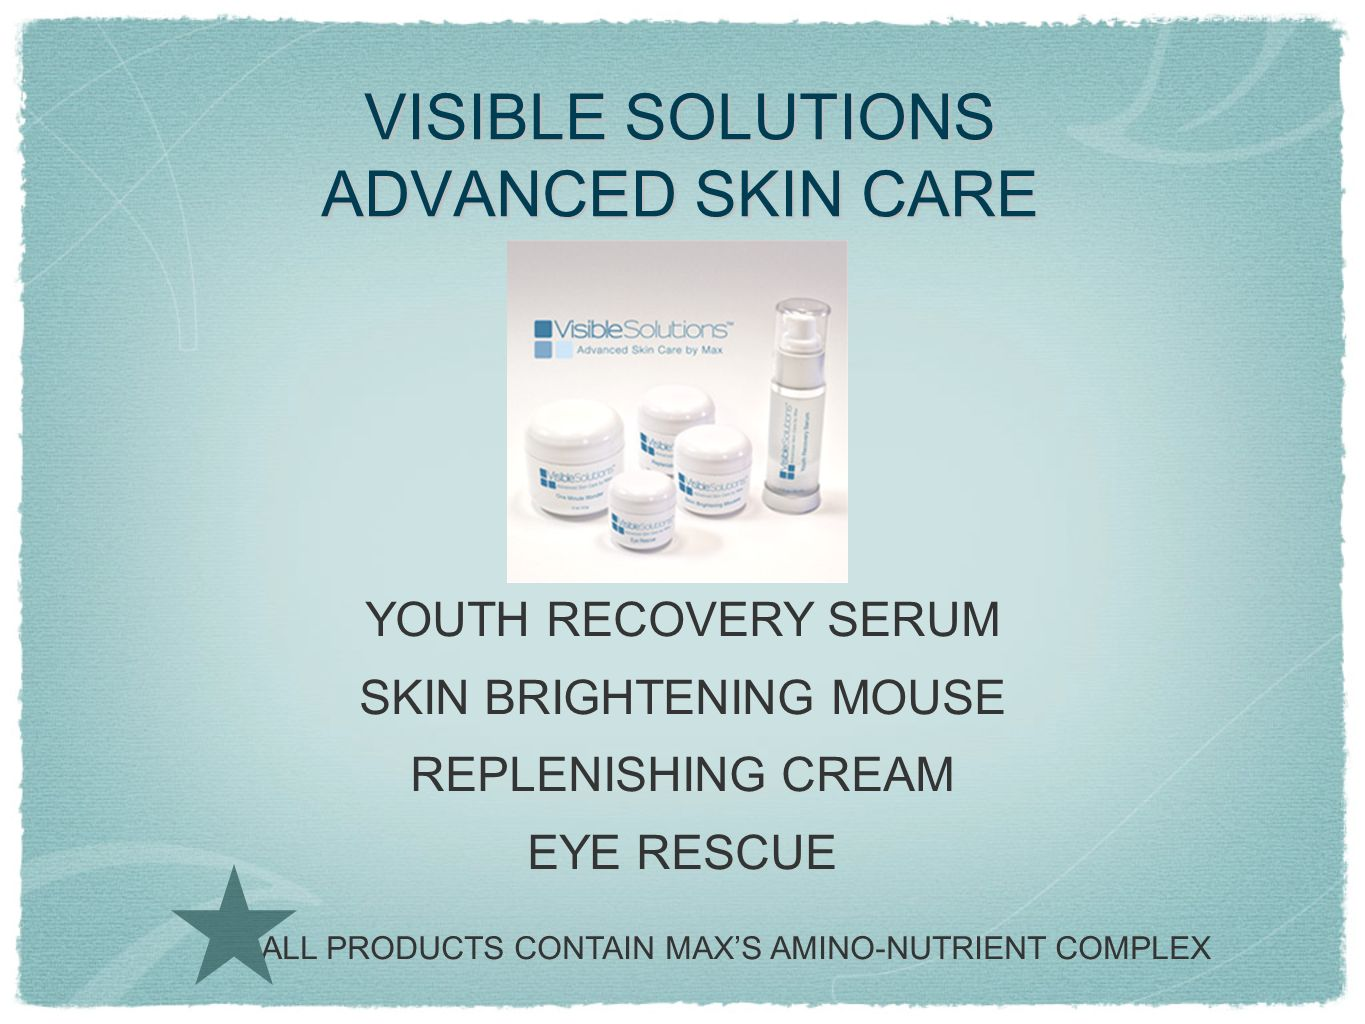 VISIBLE SOLUTIONS ADVANCED SKIN CARE YOUTH RECOVERY SERUM SKIN BRIGHTENING MOUSE REPLENISHING CREAM EYE RESCUE ALL PRODUCTS CONTAIN MAXS AMINO-NUTRIEN